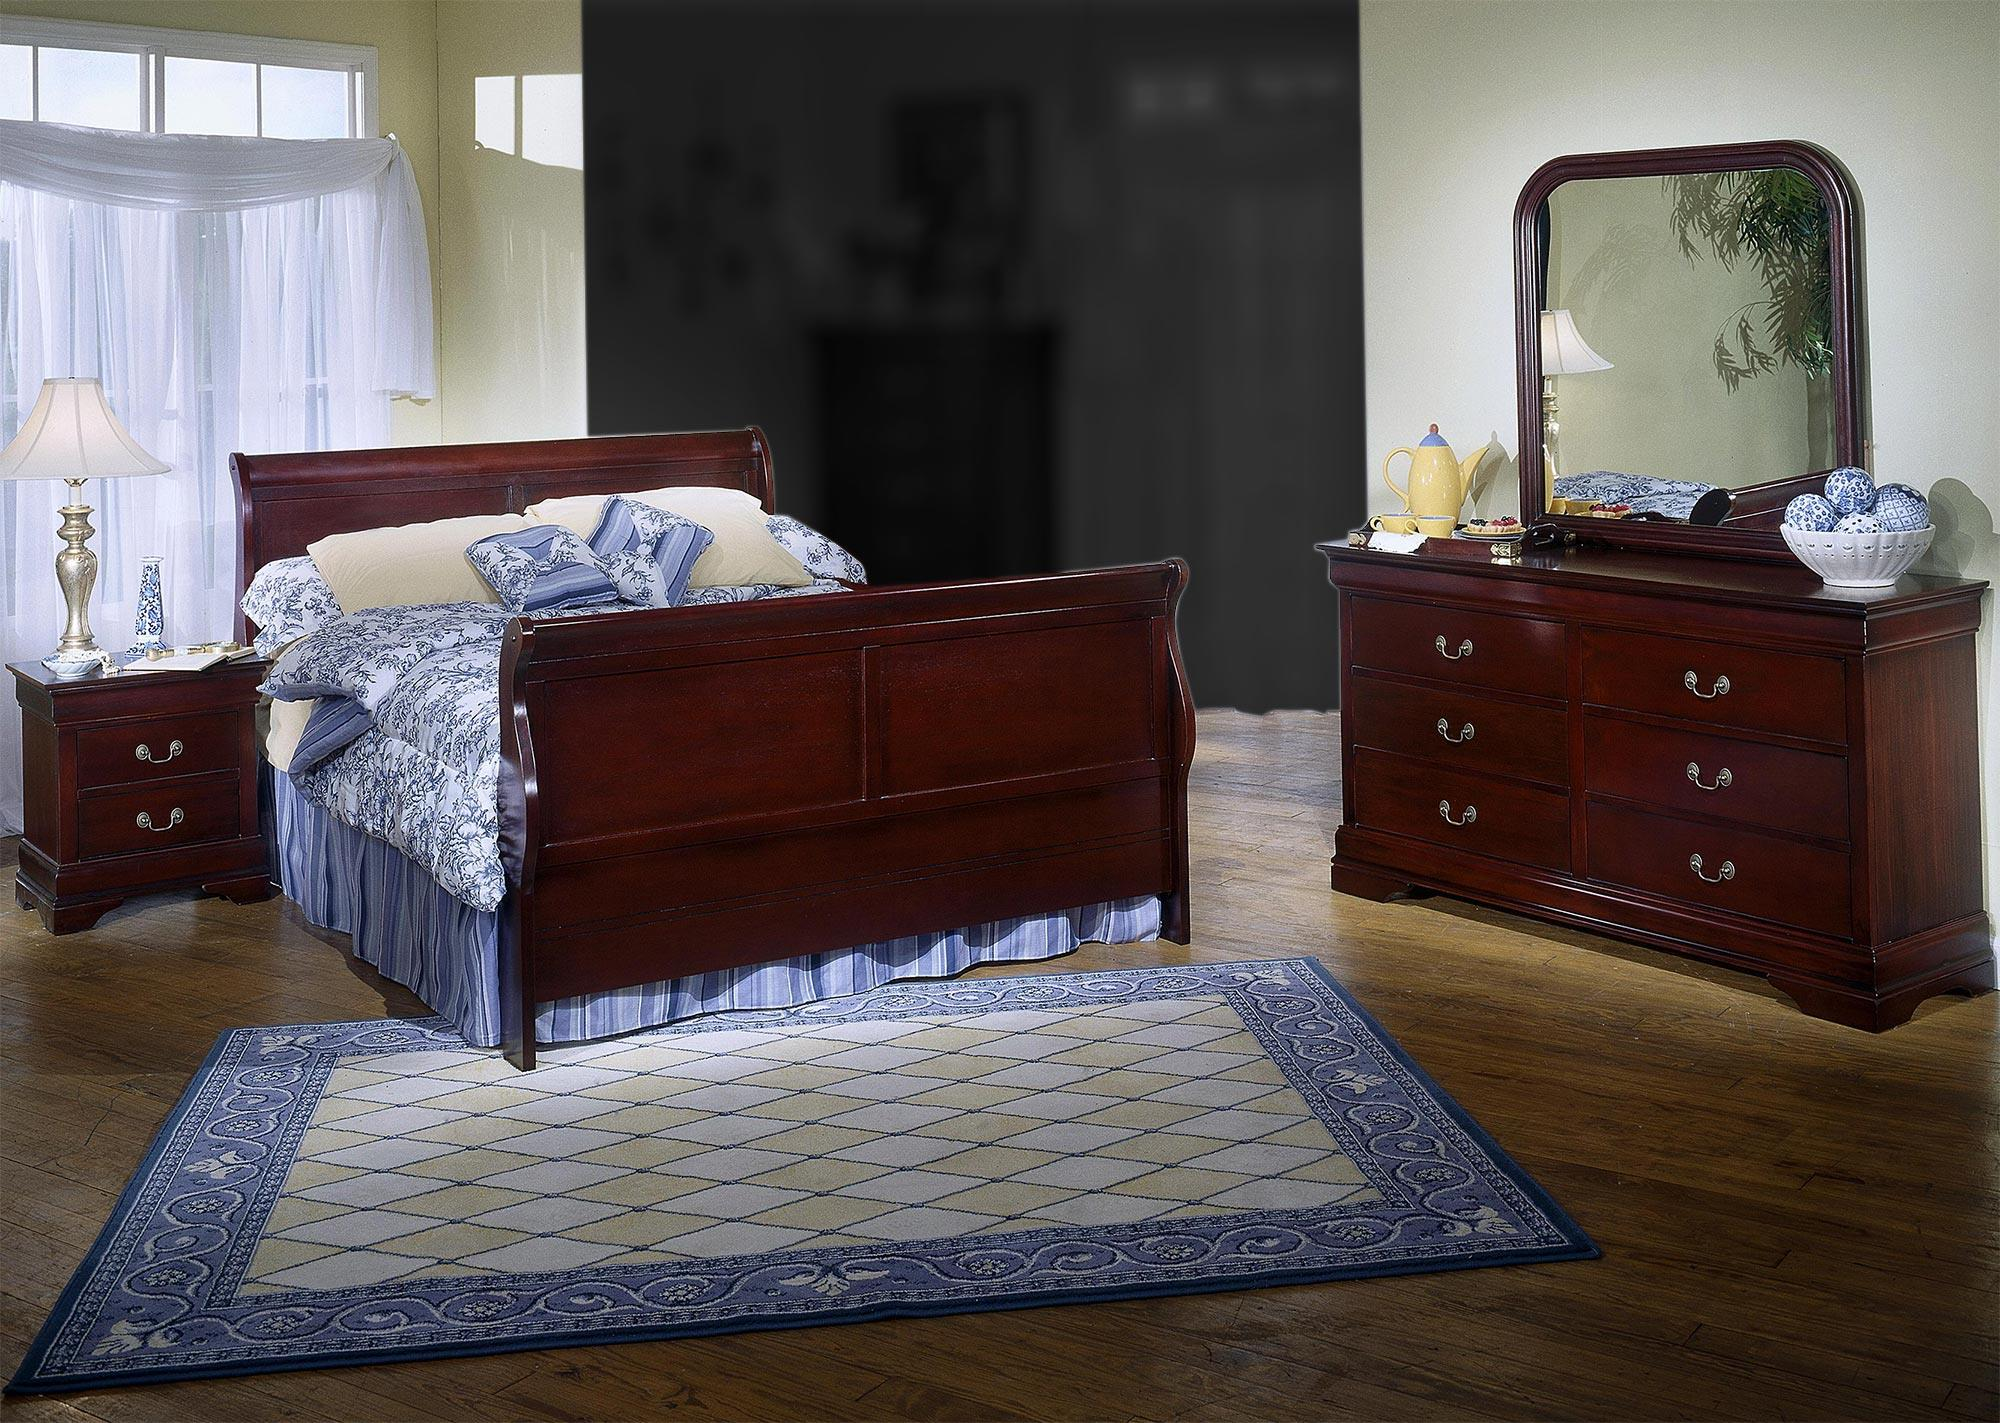 Lifestyle Louis Estates 4 Piece Queen Bedroom Set - Item Number: 4 Piece Queen Bedroom Set